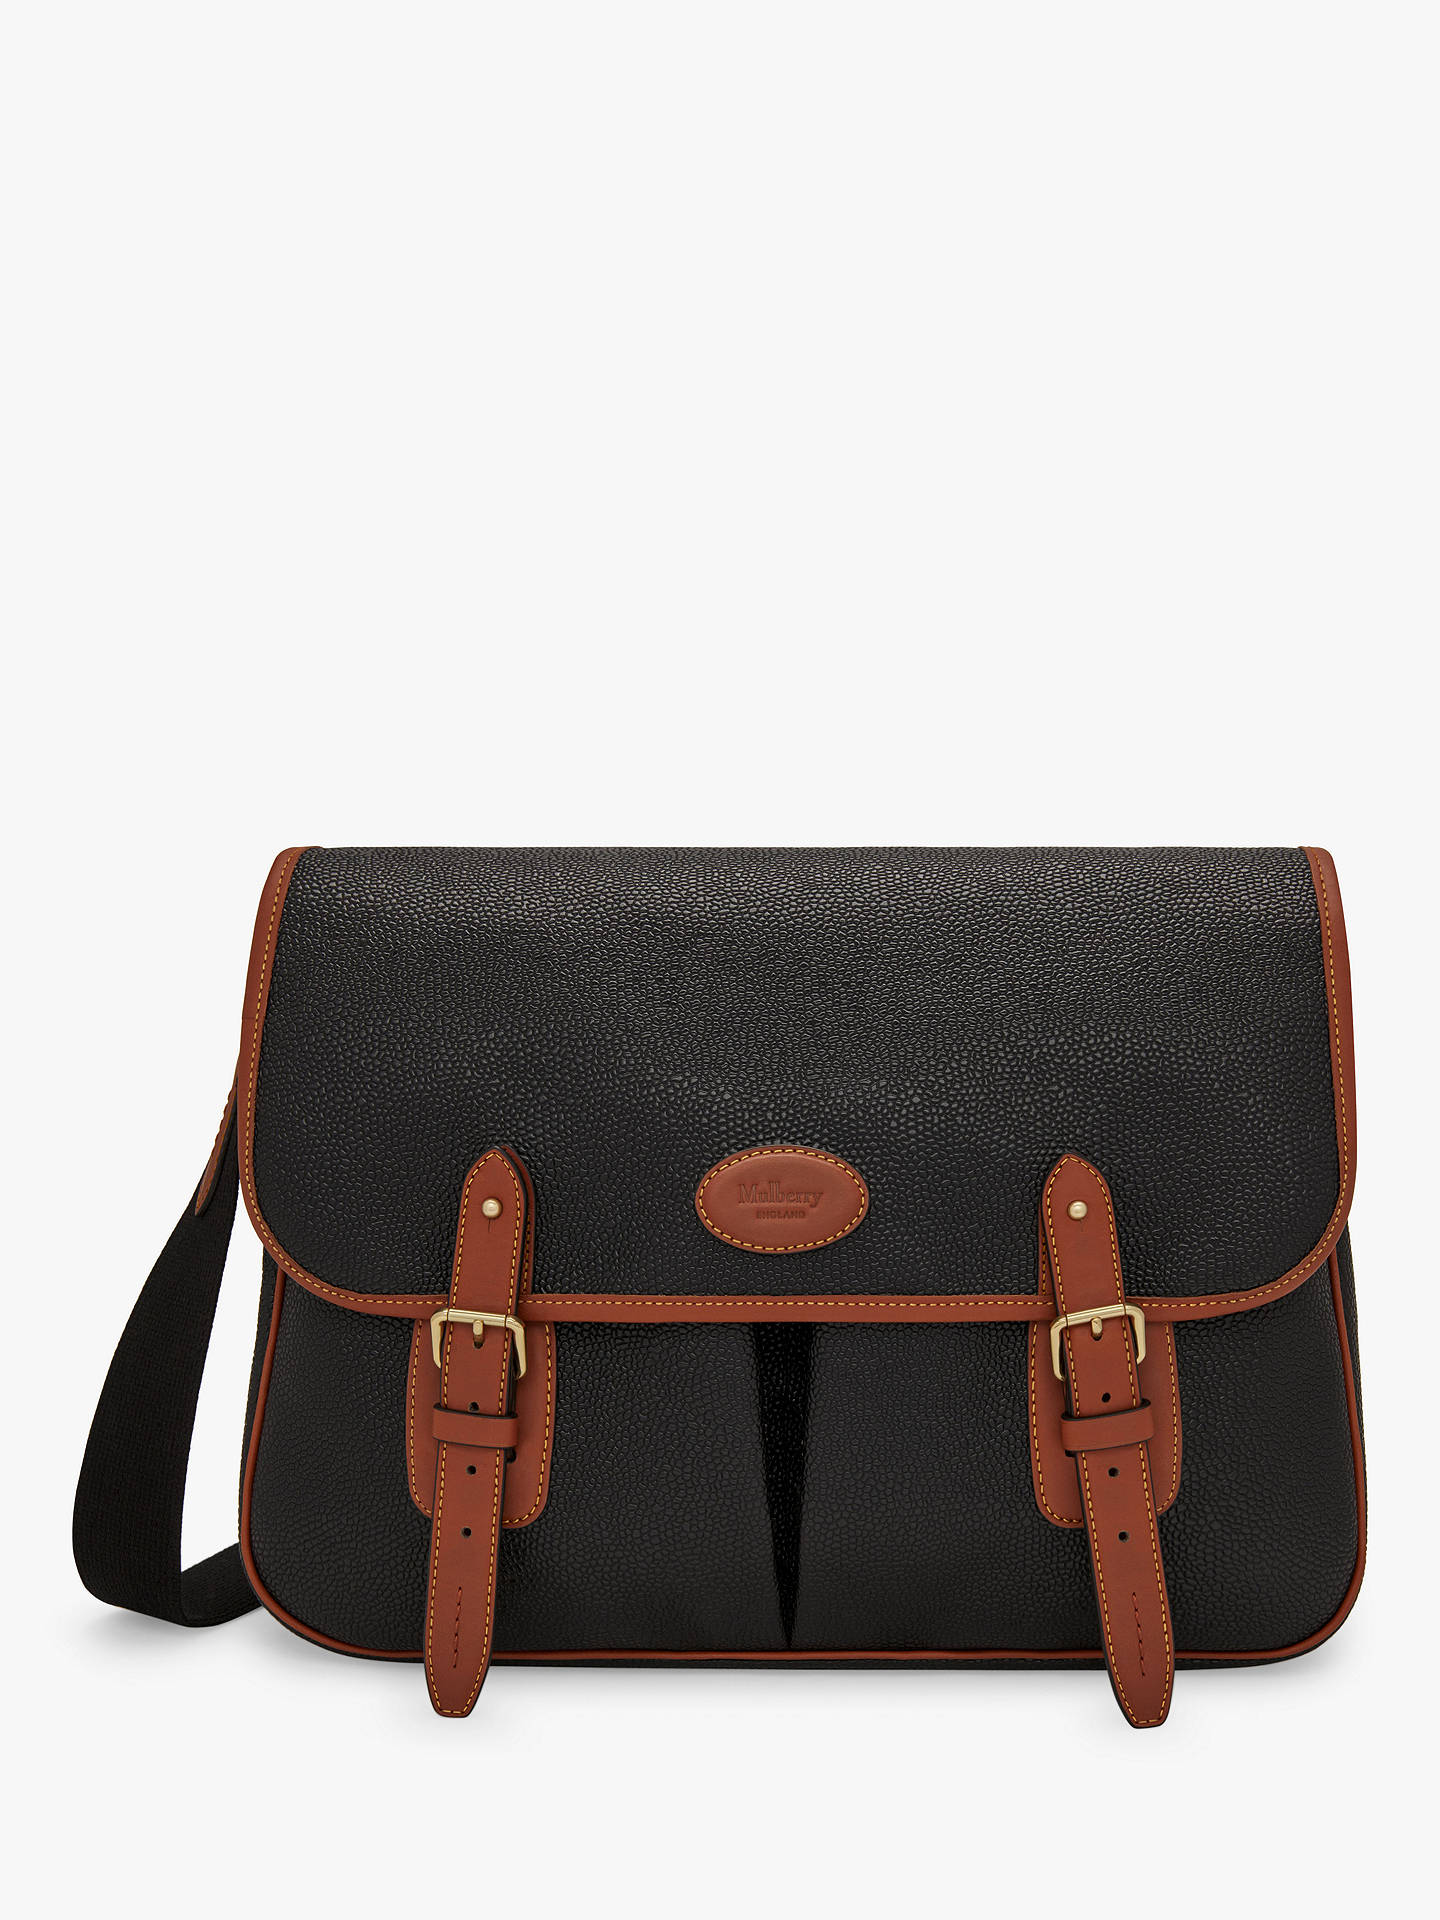 3923c86dc Buy Mulberry Heritage Scotchgrain Messenger Bag, Black/Cognac Online at  johnlewis.com ...